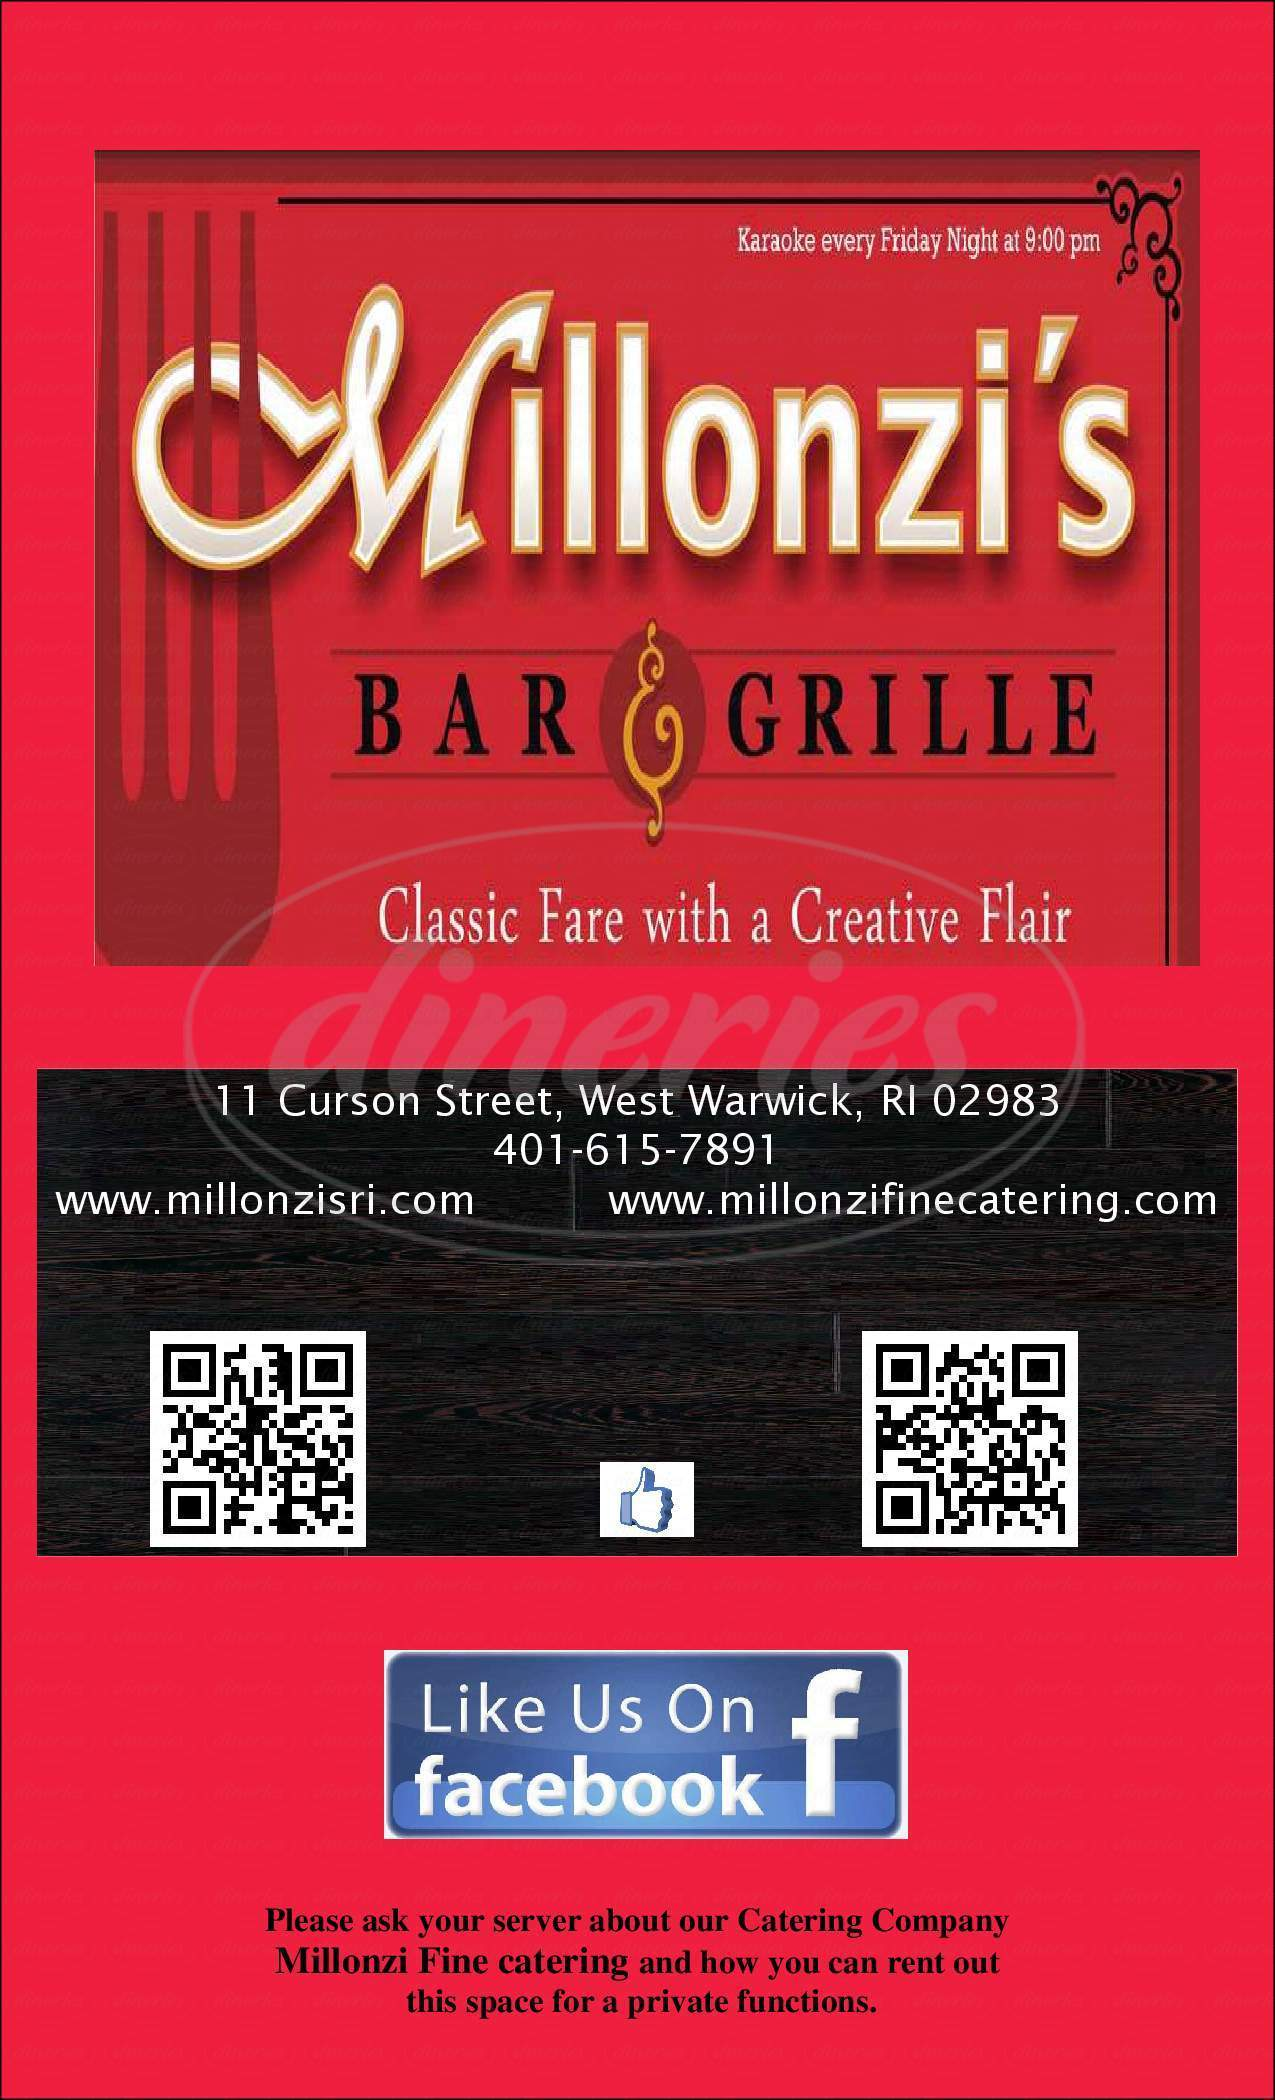 menu for Millonzi's Bar and Grille